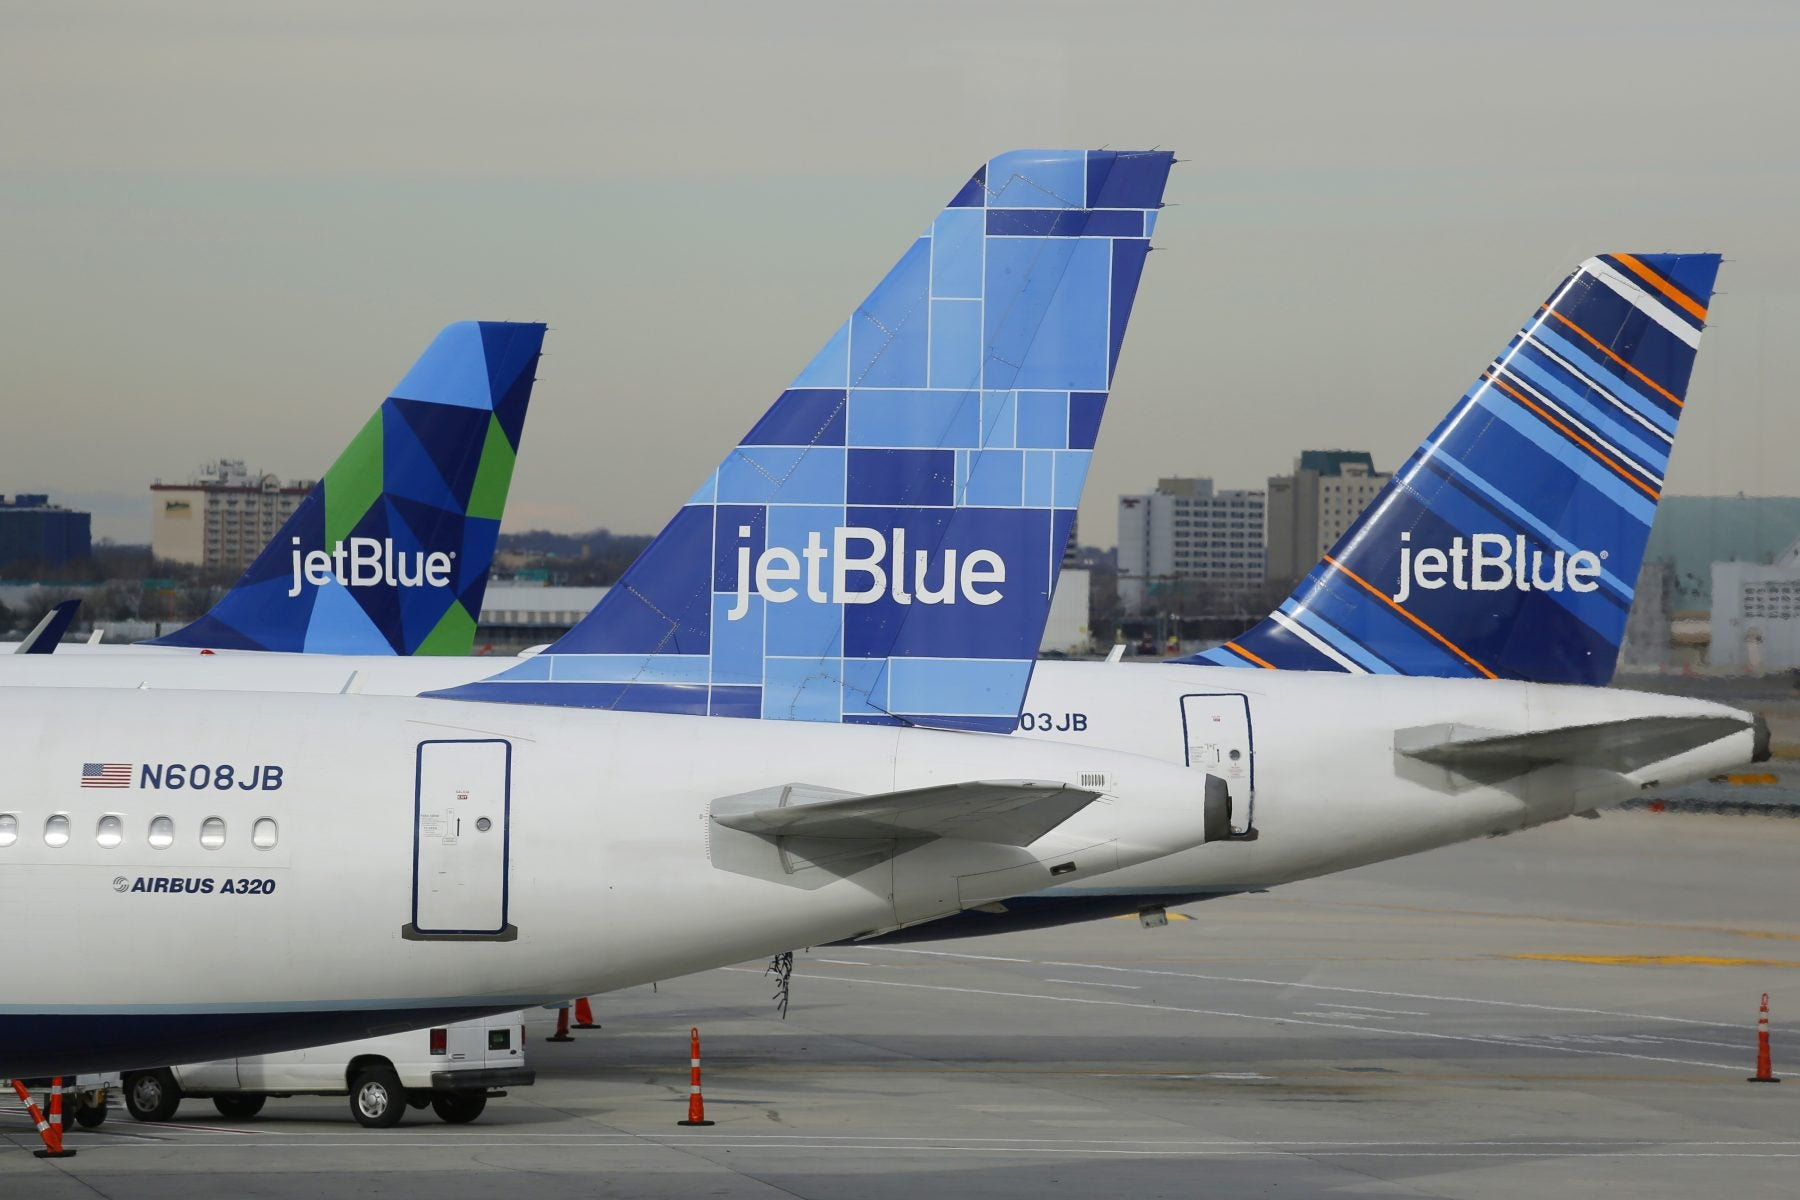 JetBlue Airplanes on tarmac